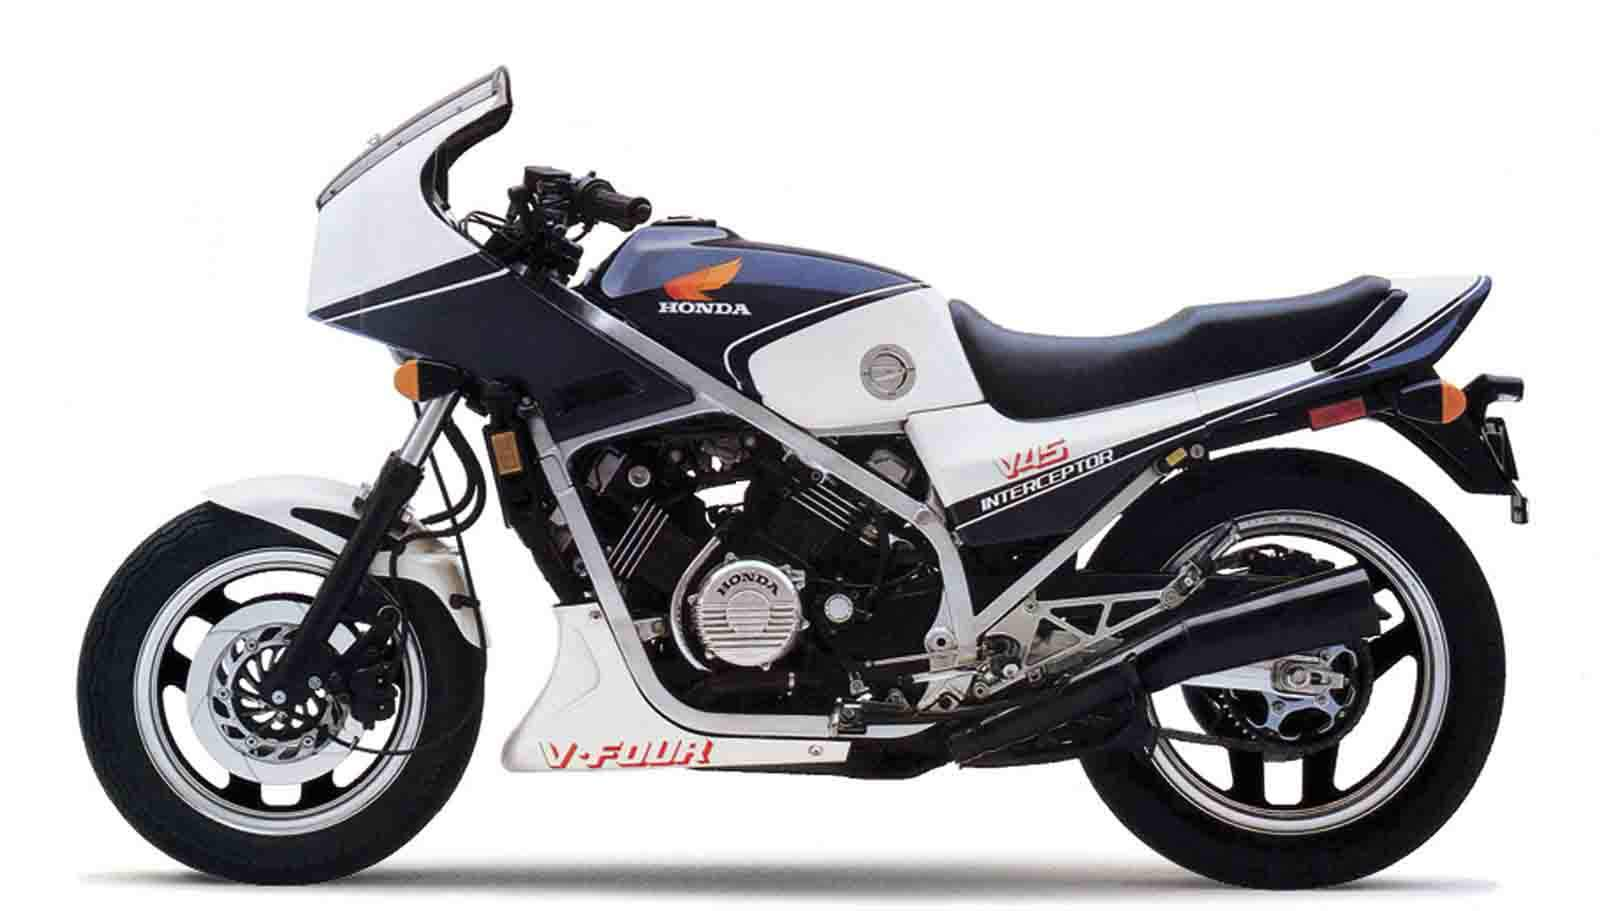 VF750 Interceptor